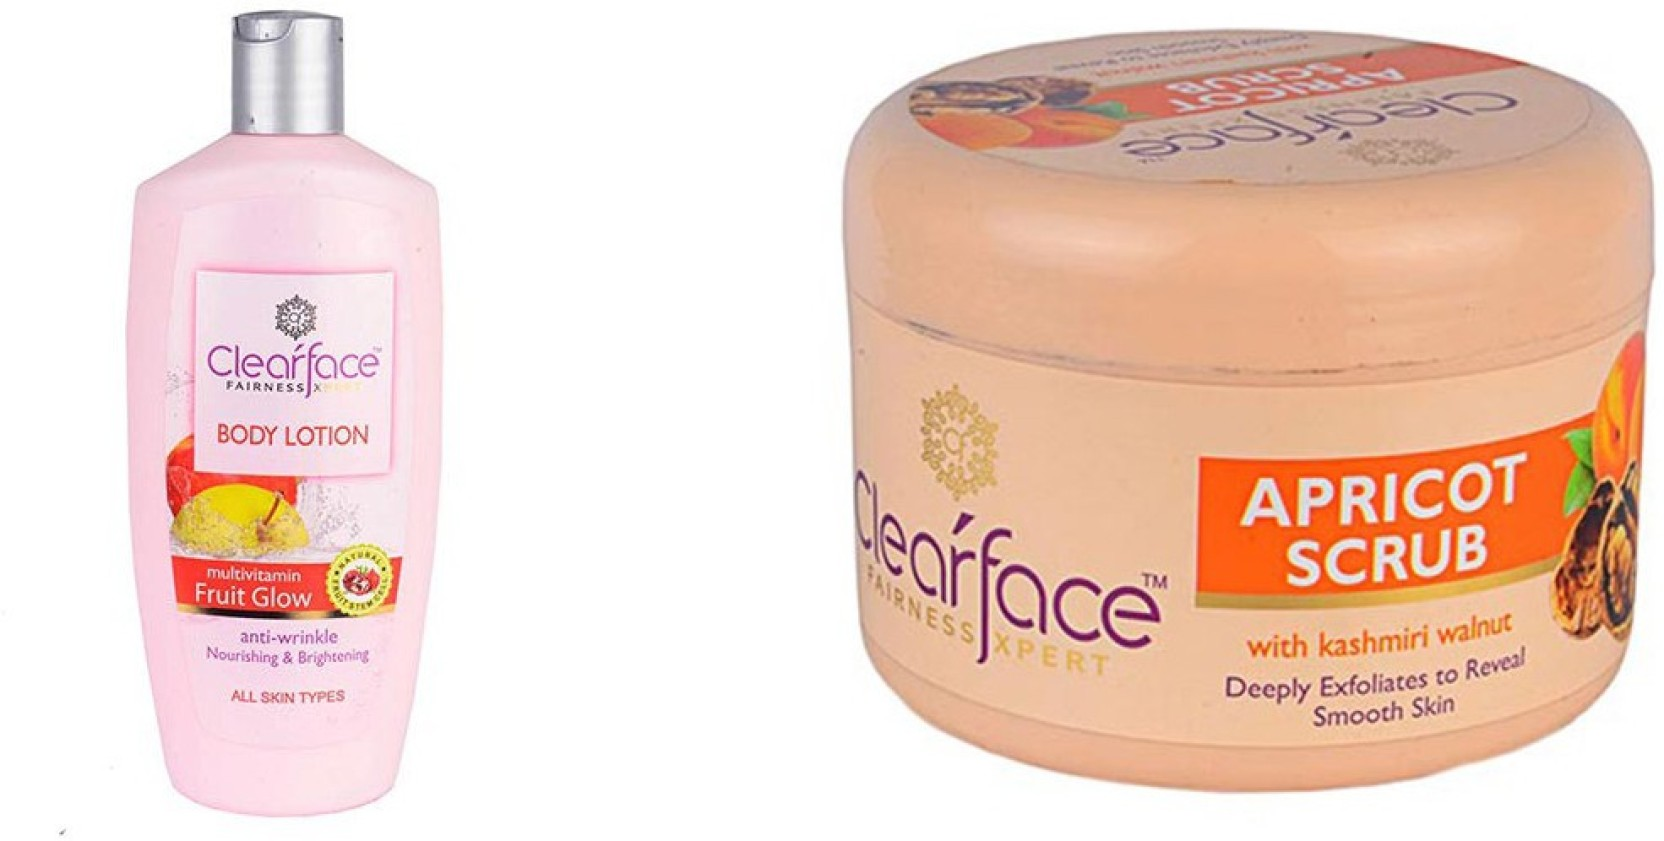 Clearface Multivitamin Fruit Glow Body Lotion With Apricot Scrub Vaseline Healthy White Perfect 10 200ml Twin Pack Share